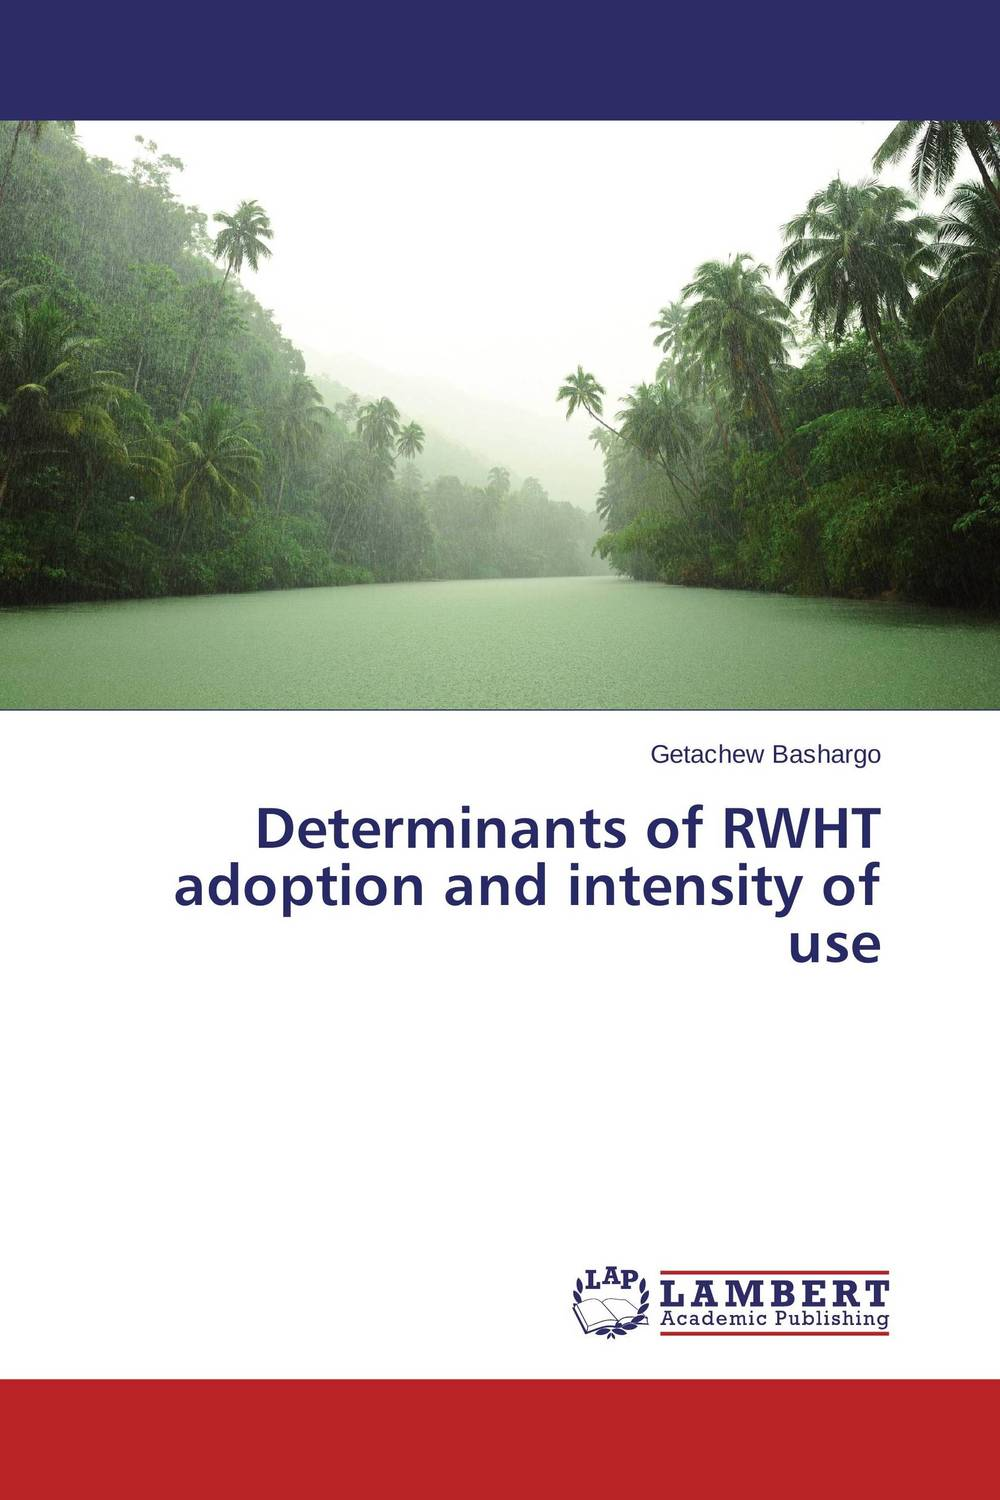 Determinants of RWHT adoption and intensity of use household rainwater harvesting ponds in ethiopia